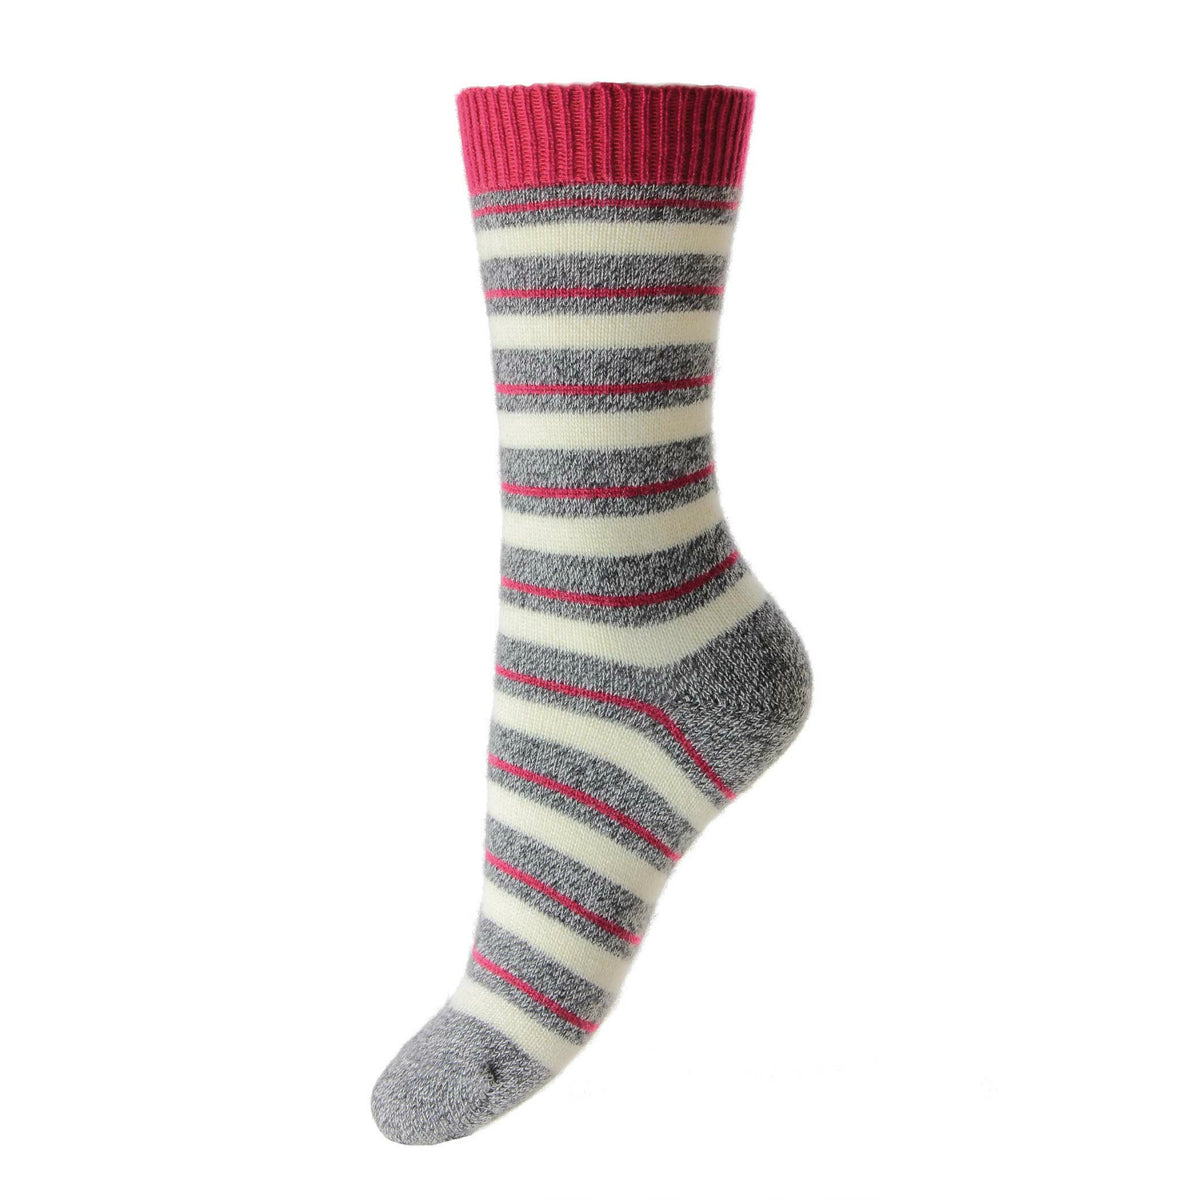 Striped Ladies Cashmere Socks | Grey Ankle Sock | buy now at The Cashmere Choice London